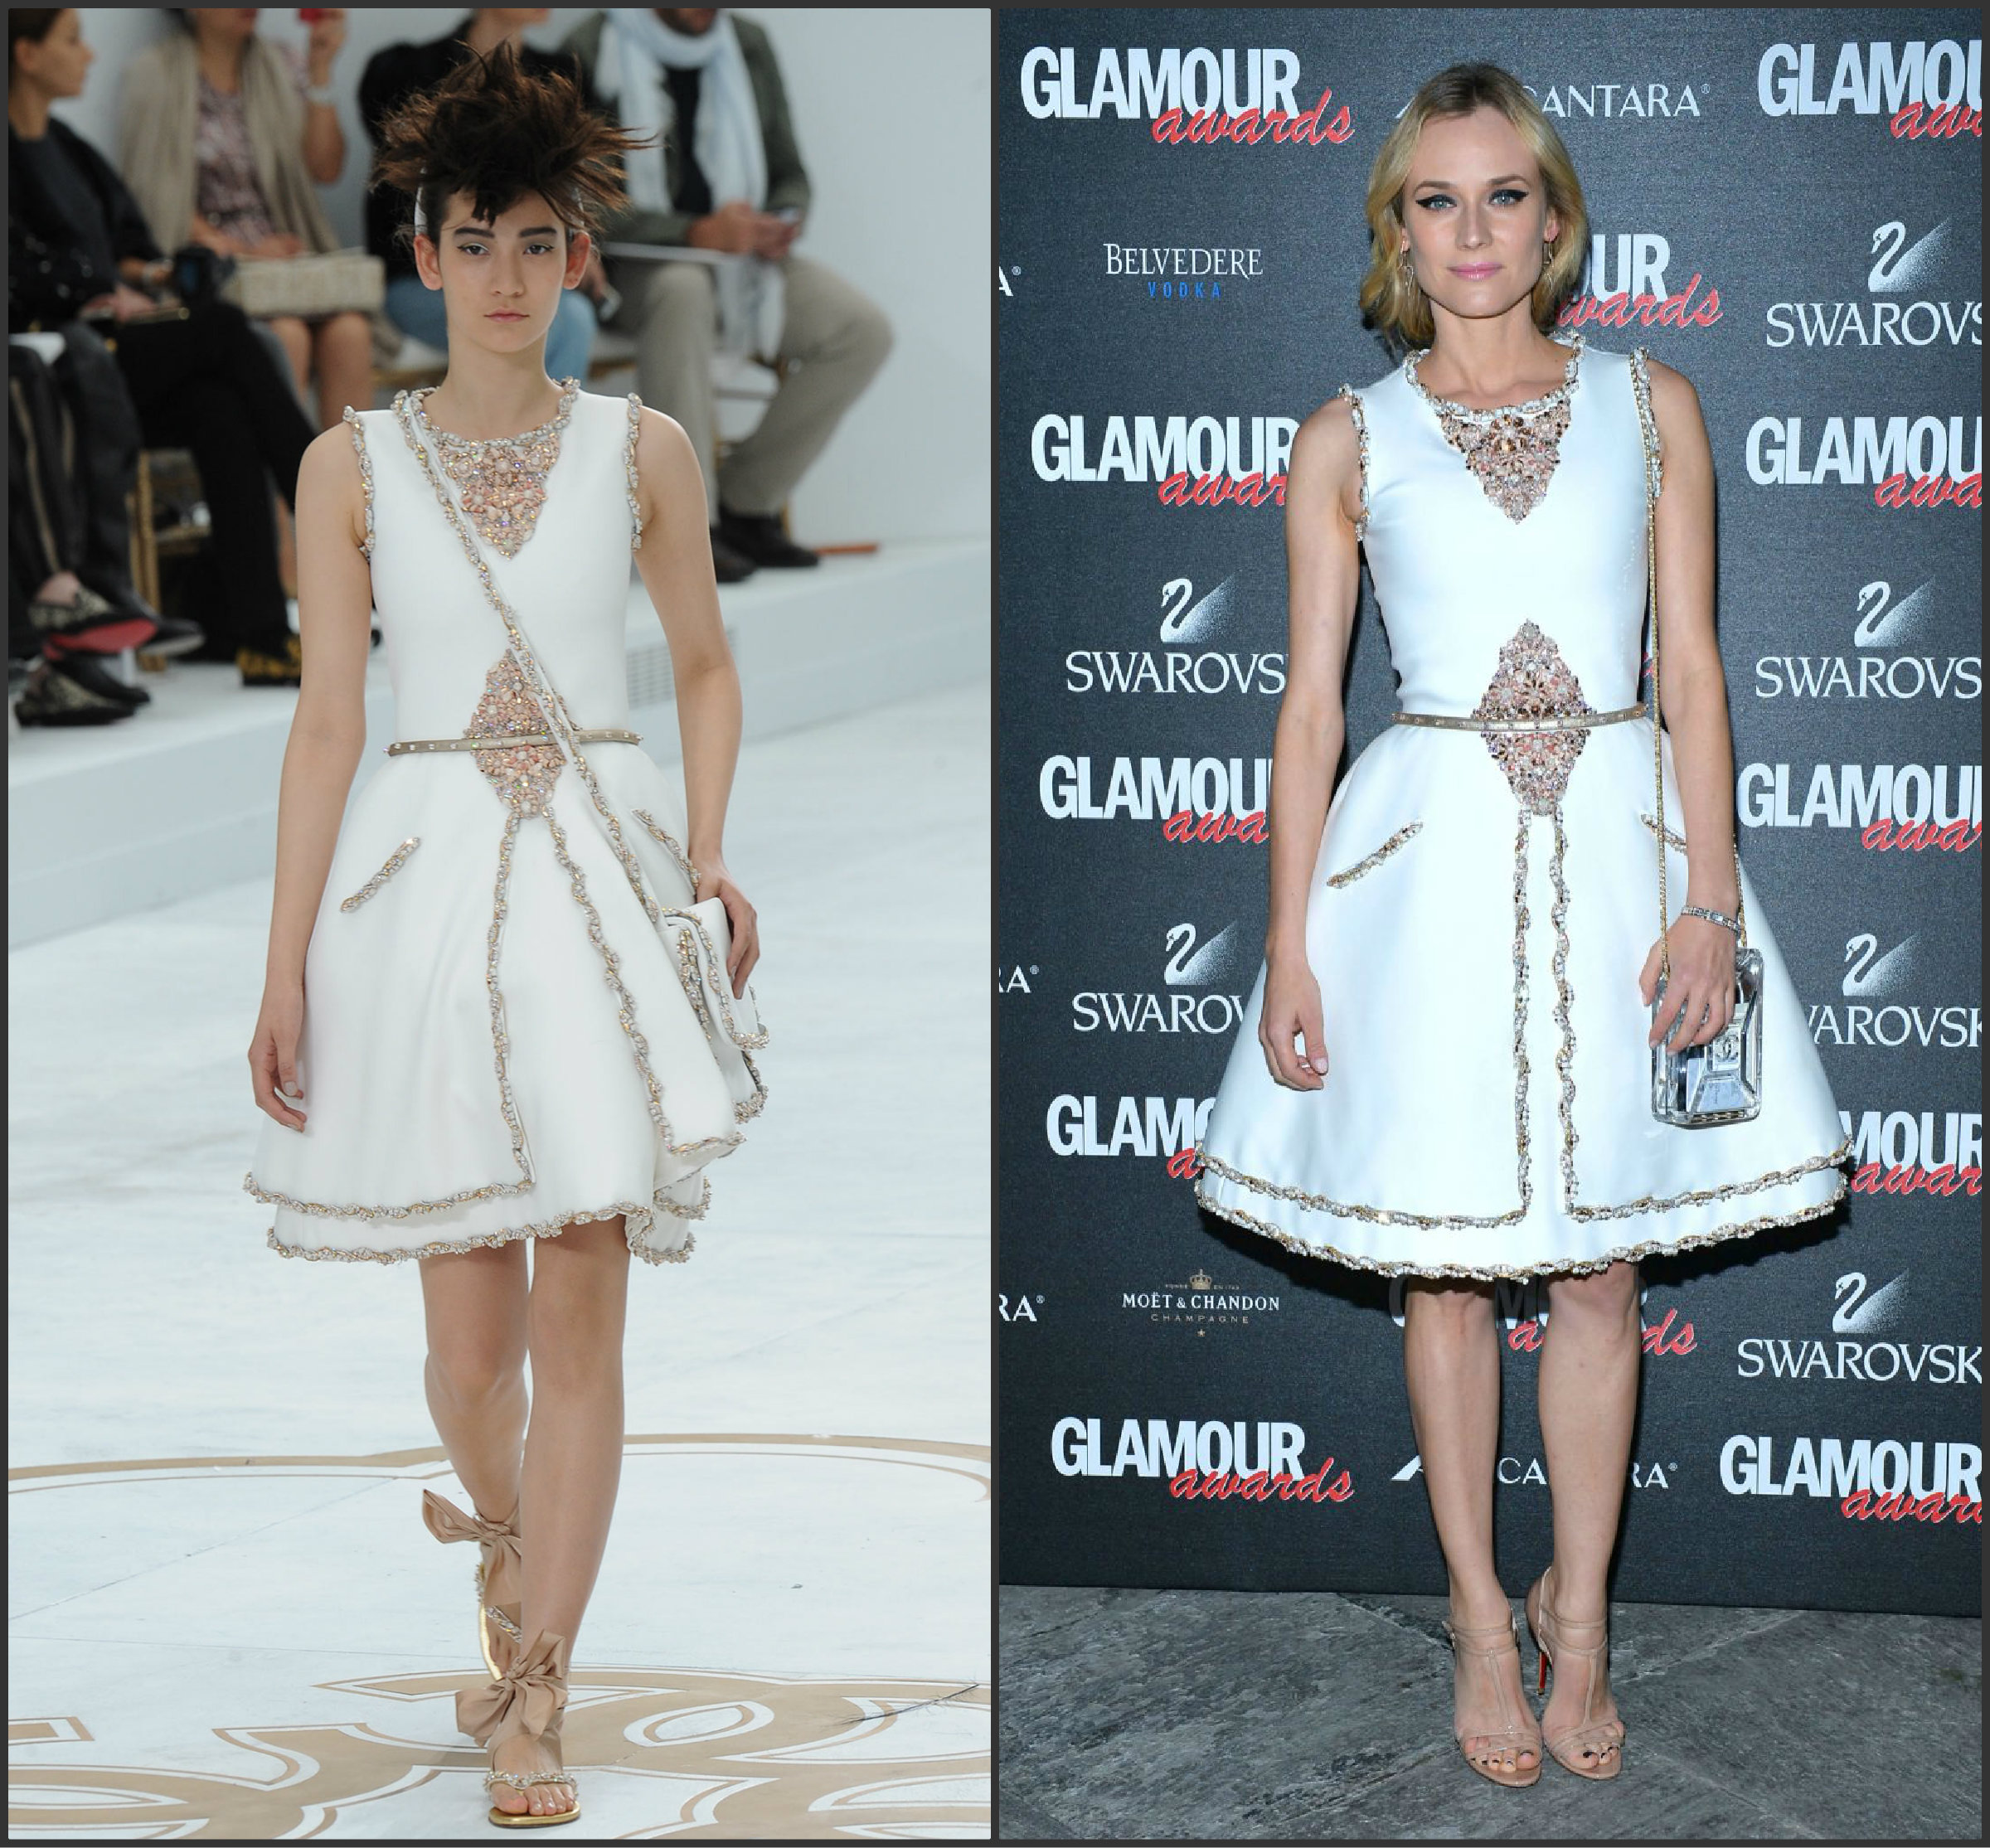 Diane-Kruger-wears-Chanel-Couture-2014-Glamour-AWARDS